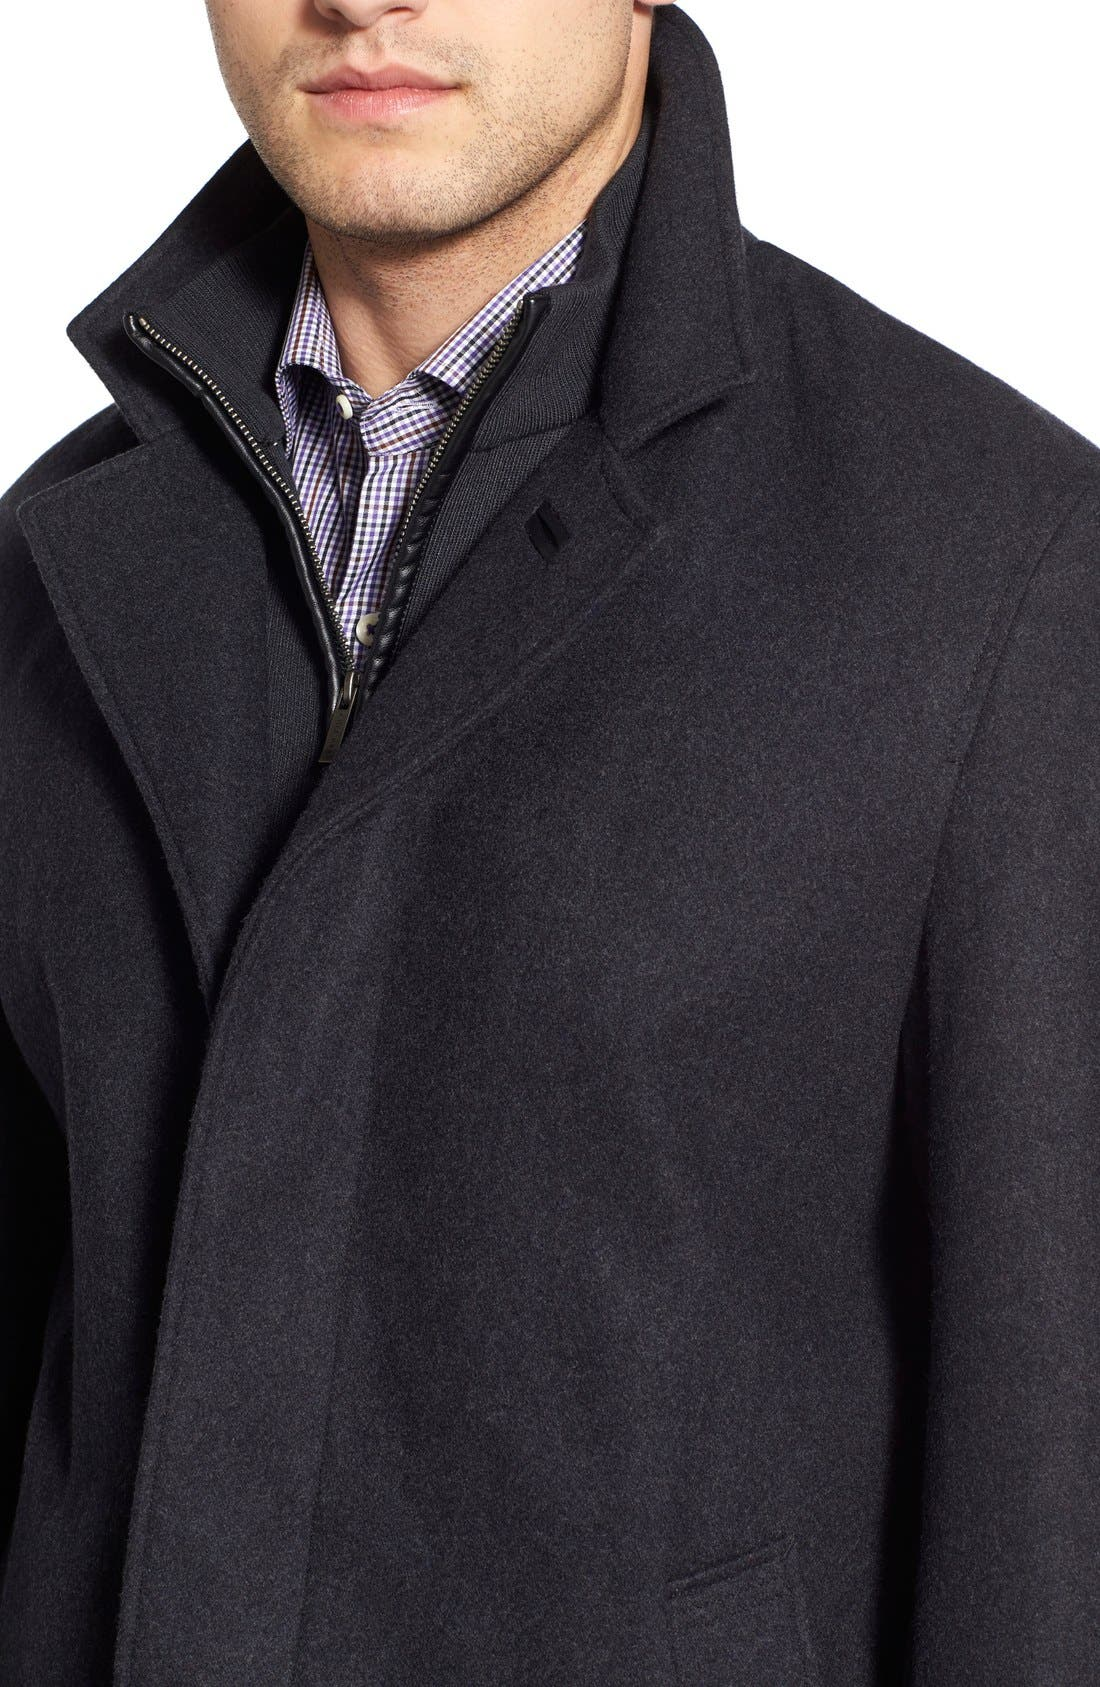 Wool Blend Topcoat with Inset Knit Bib,                             Alternate thumbnail 8, color,